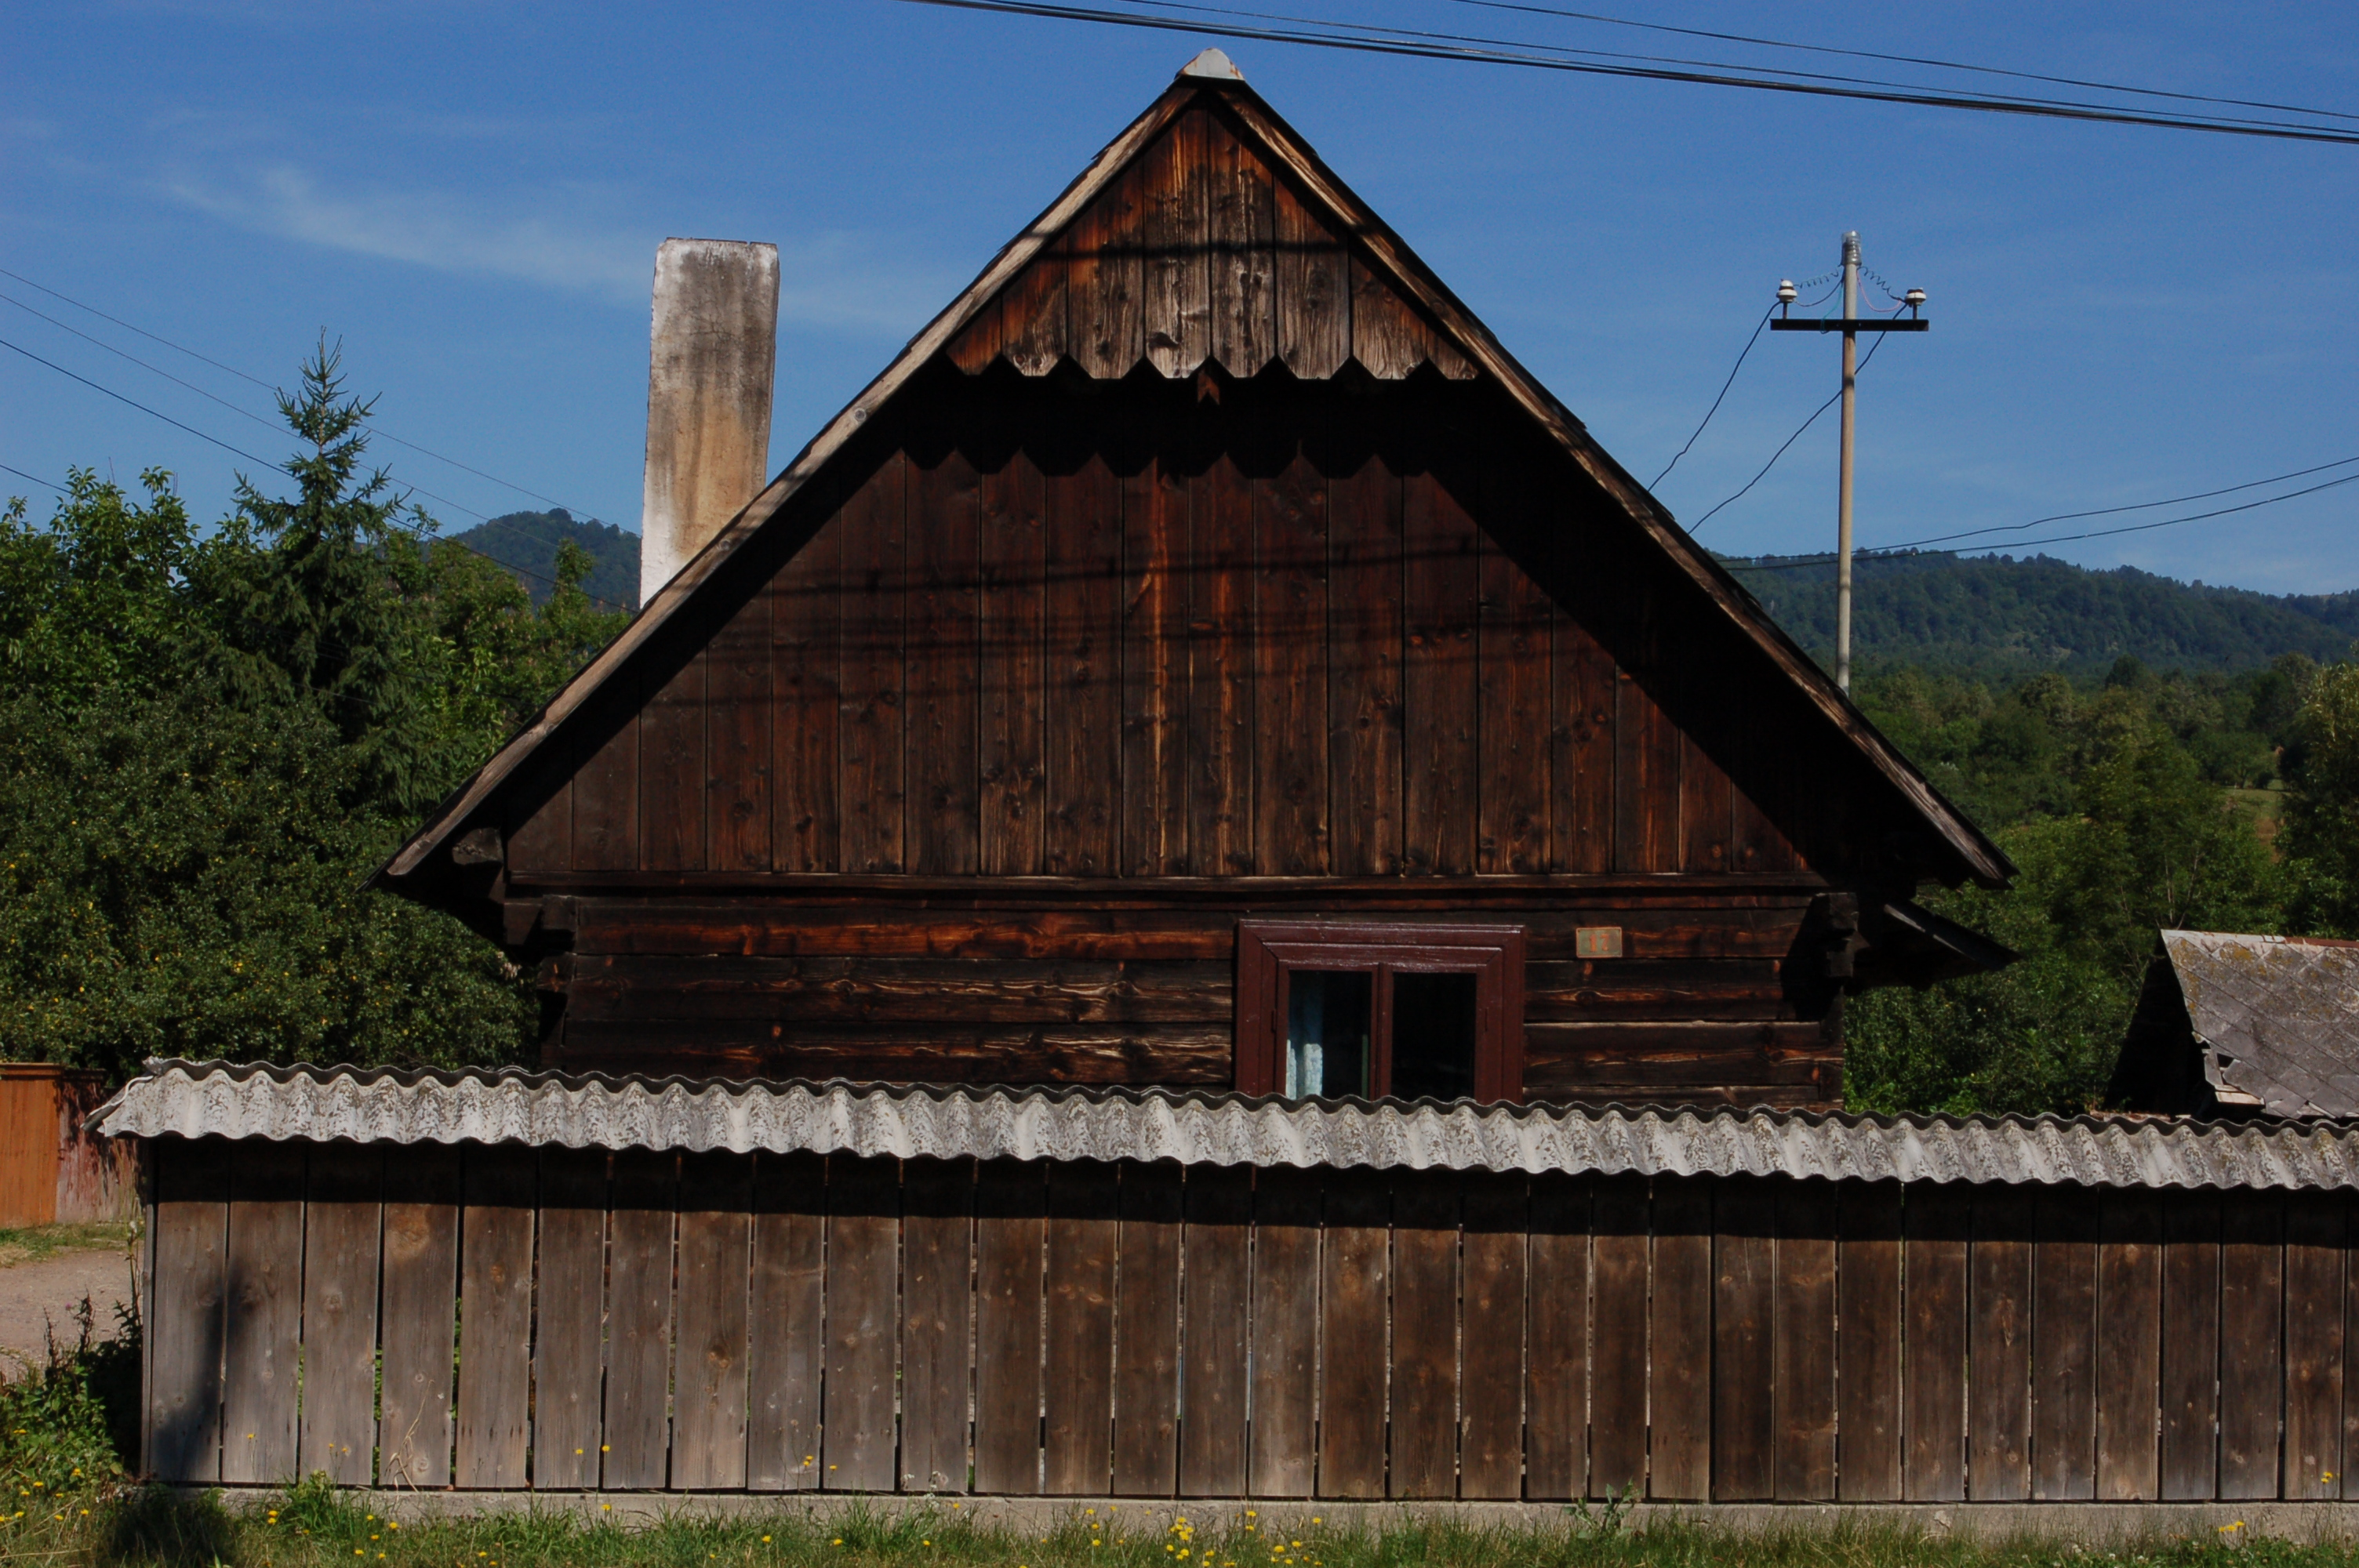 1000 Images About Maramures Architecture On Pinterest Romania Close Image And Arrow Keys